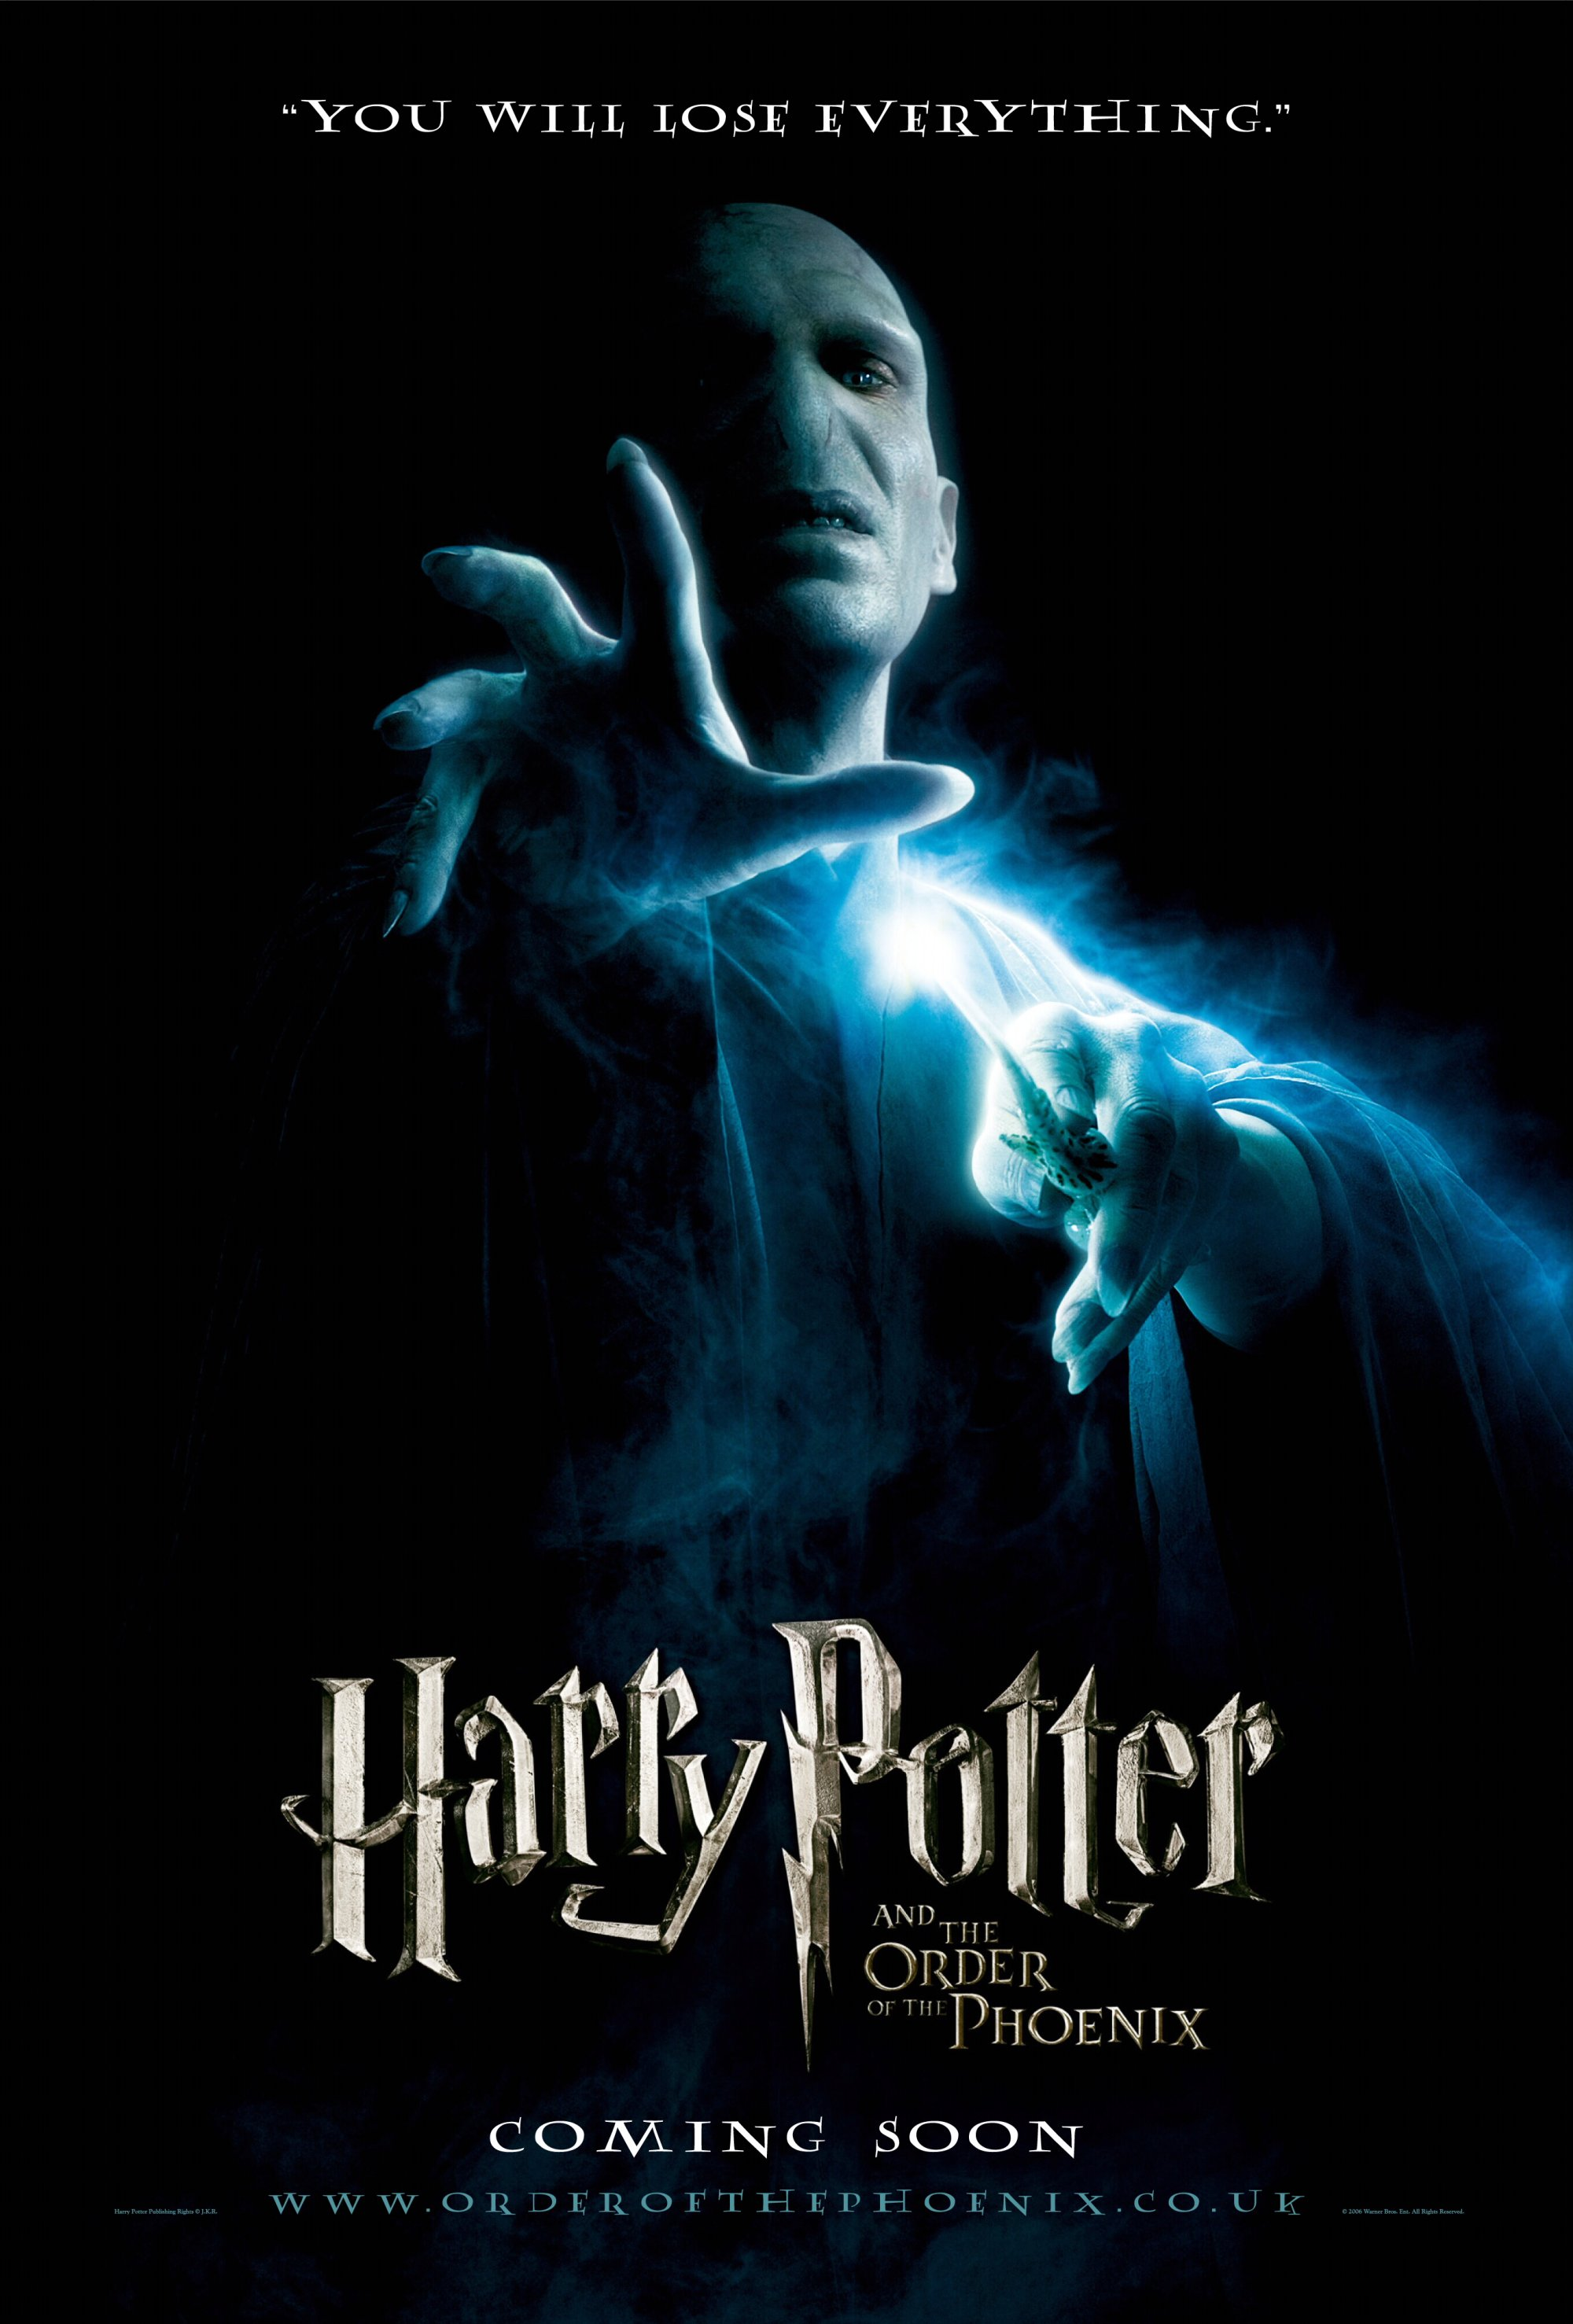 Fil:Harry potter and the order of the phoenix.jpg